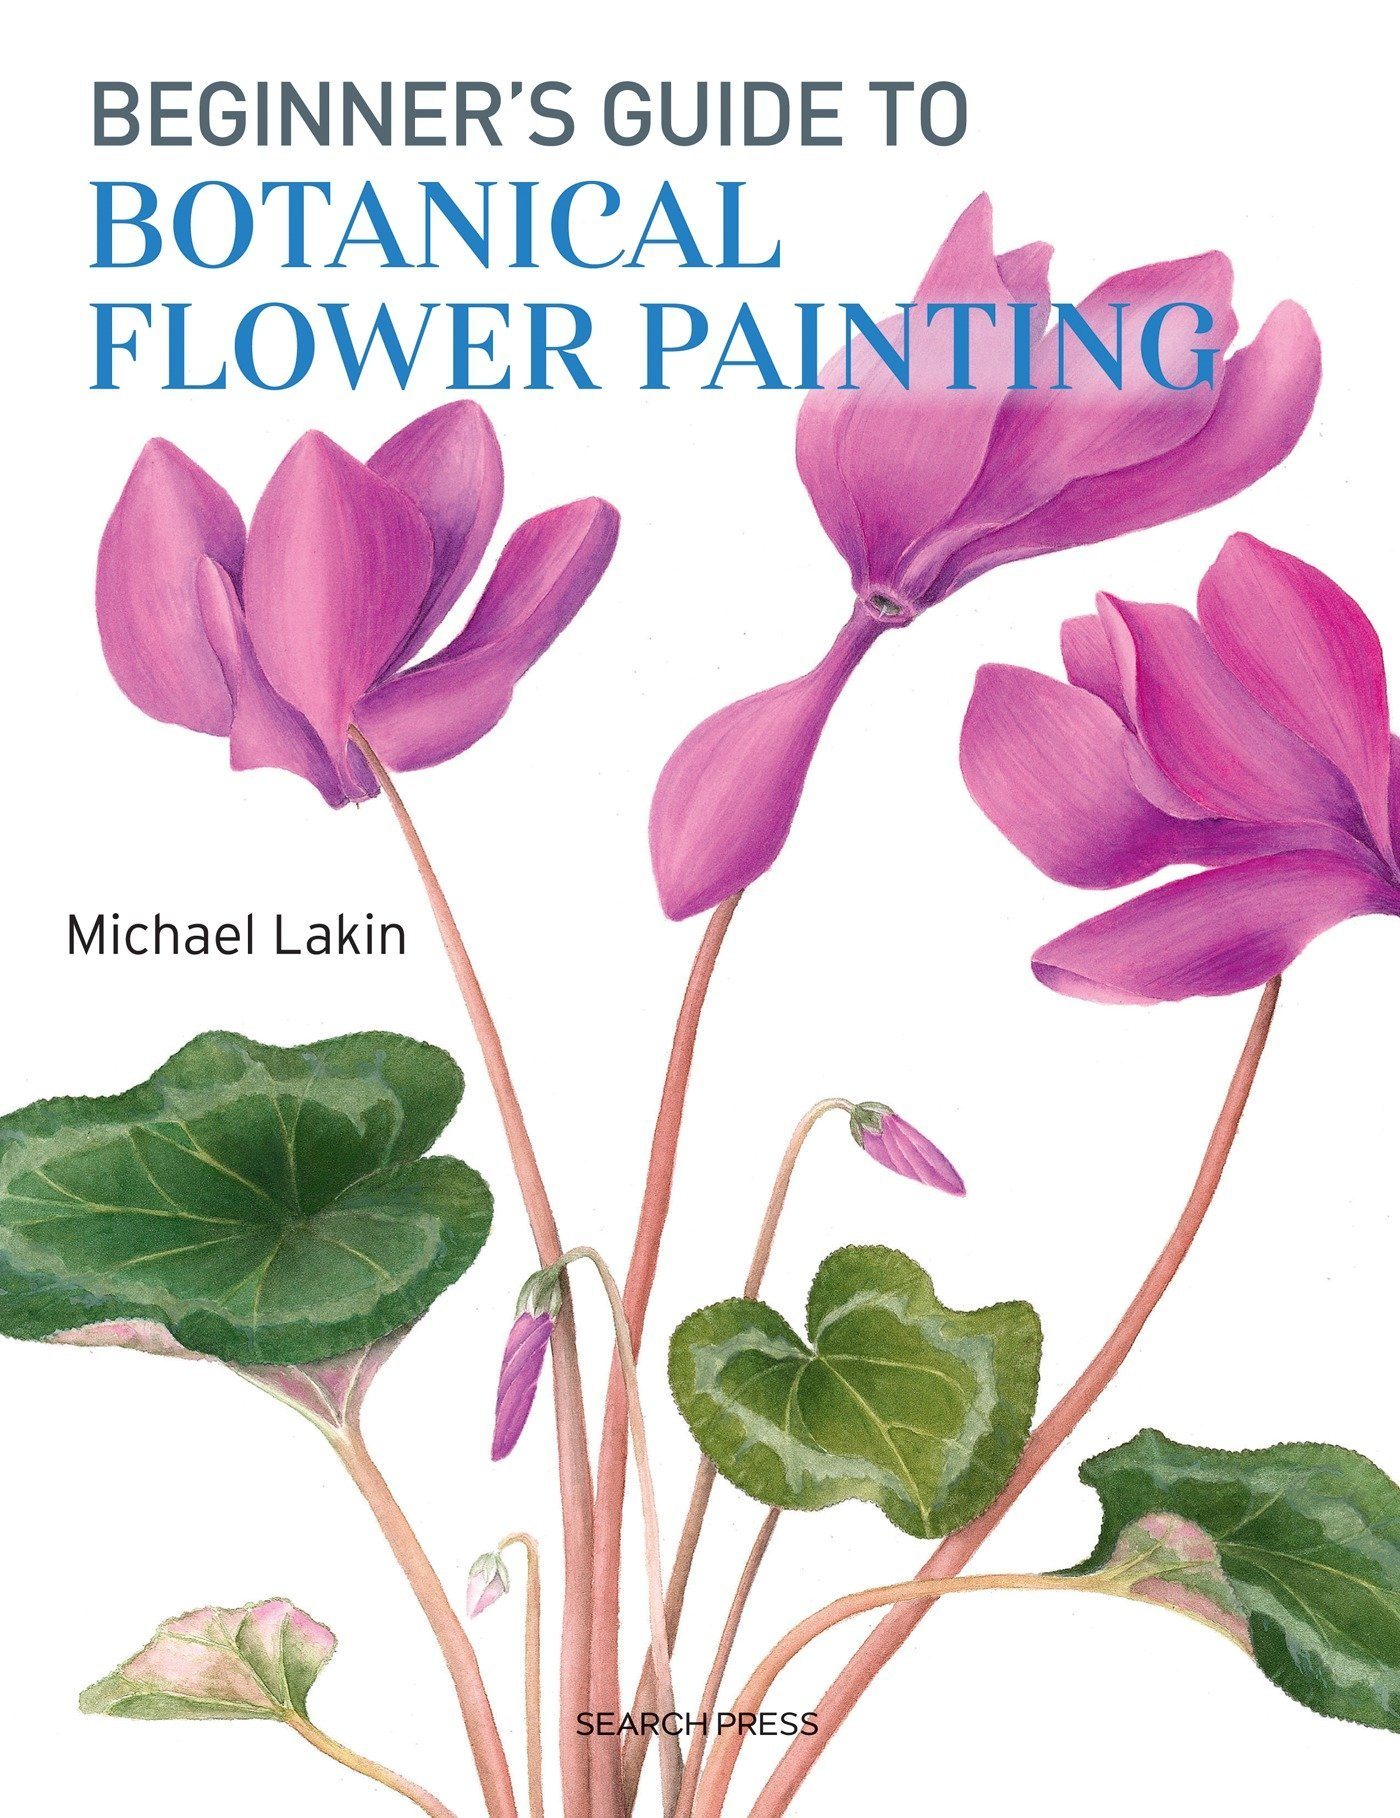 Beginners guide to botanical flower painting michael lakin beginners guide to botanical flower painting michael lakin 9781782213109 amazon books izmirmasajfo